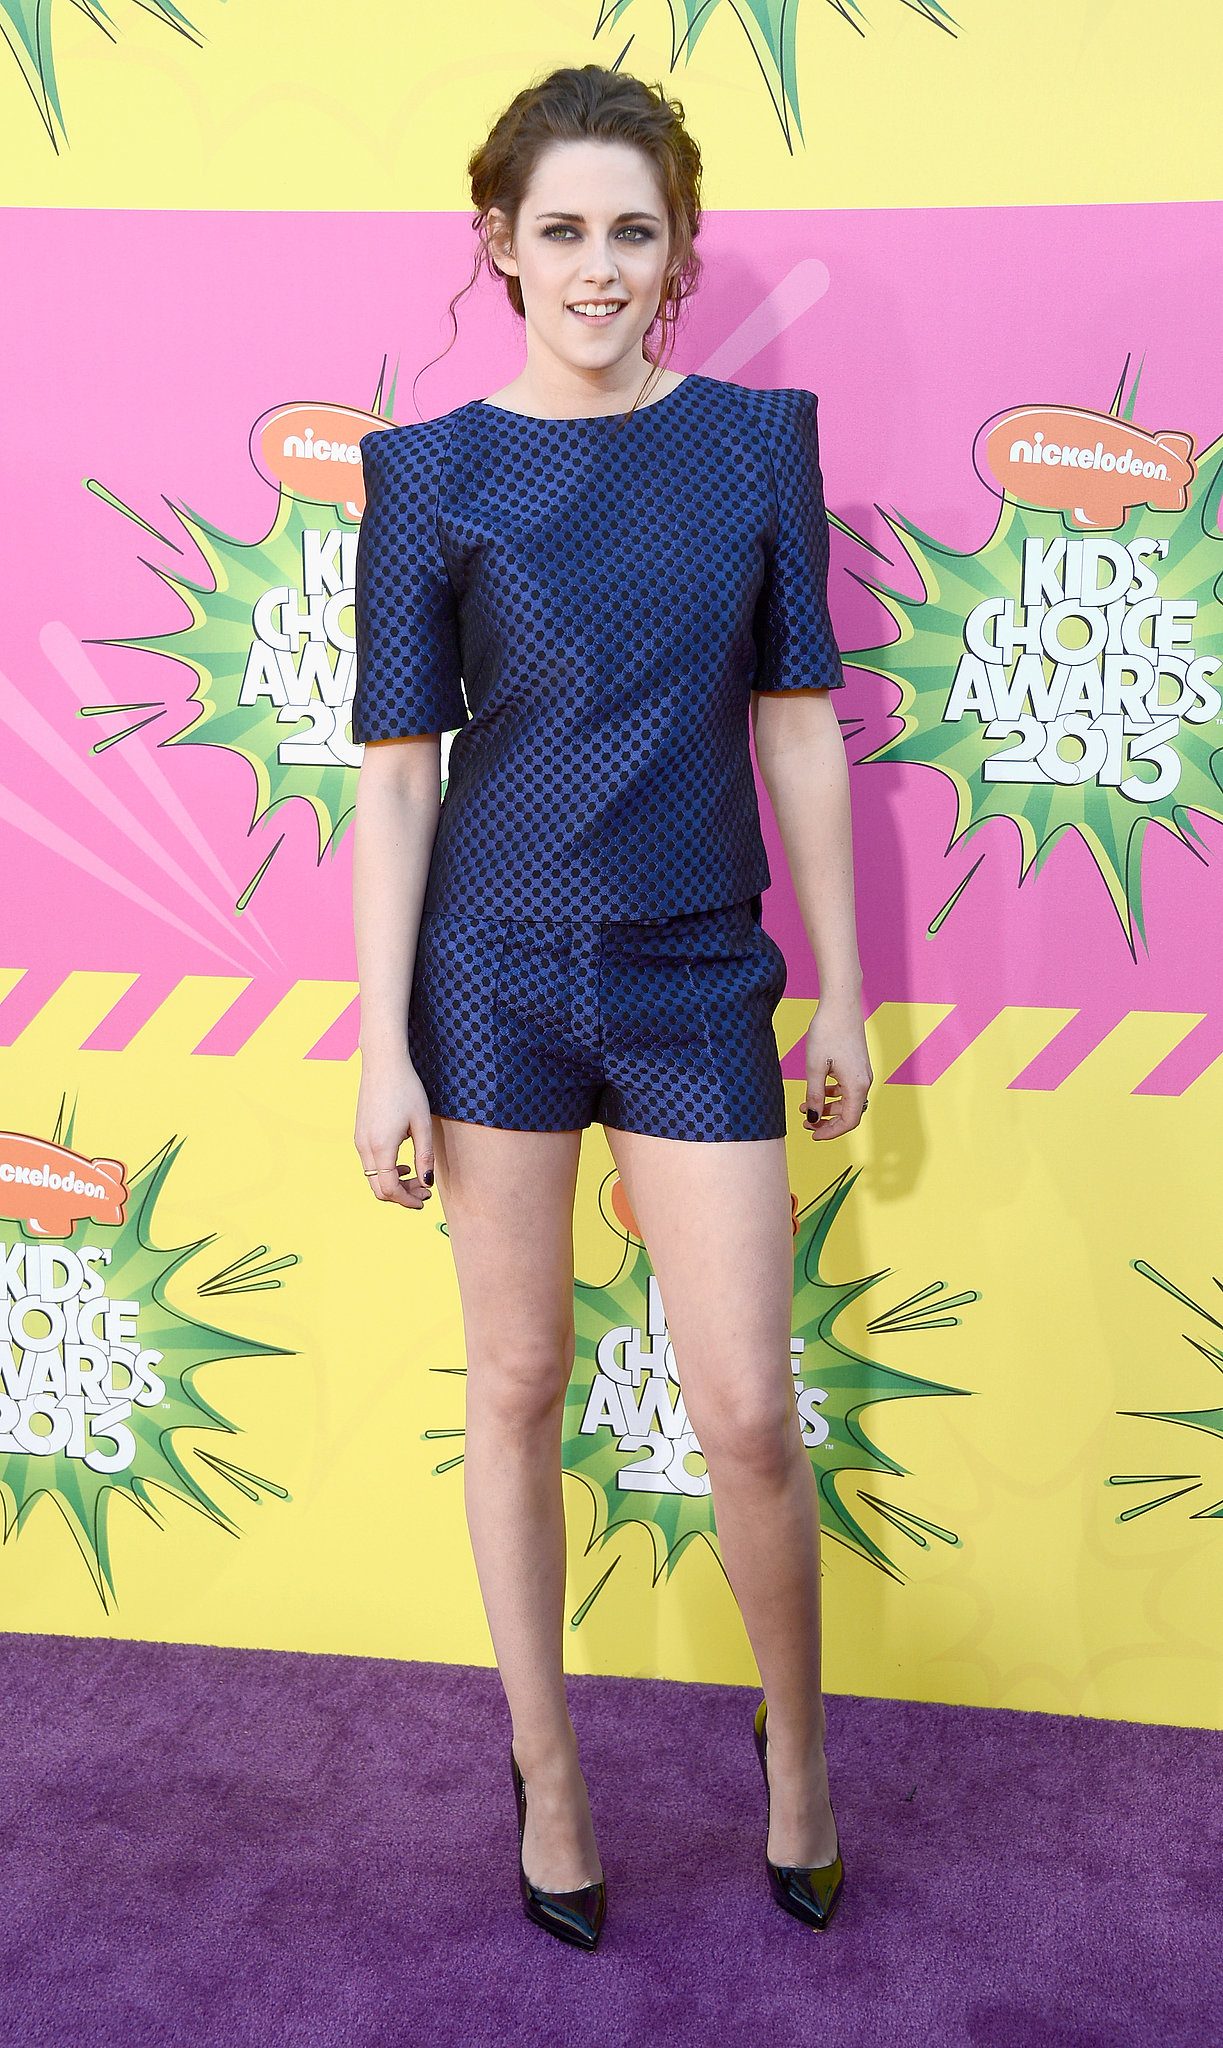 Kristen Stewart was all smiles at the Kids Choice Awards, showing some leg in short Osman shorts.